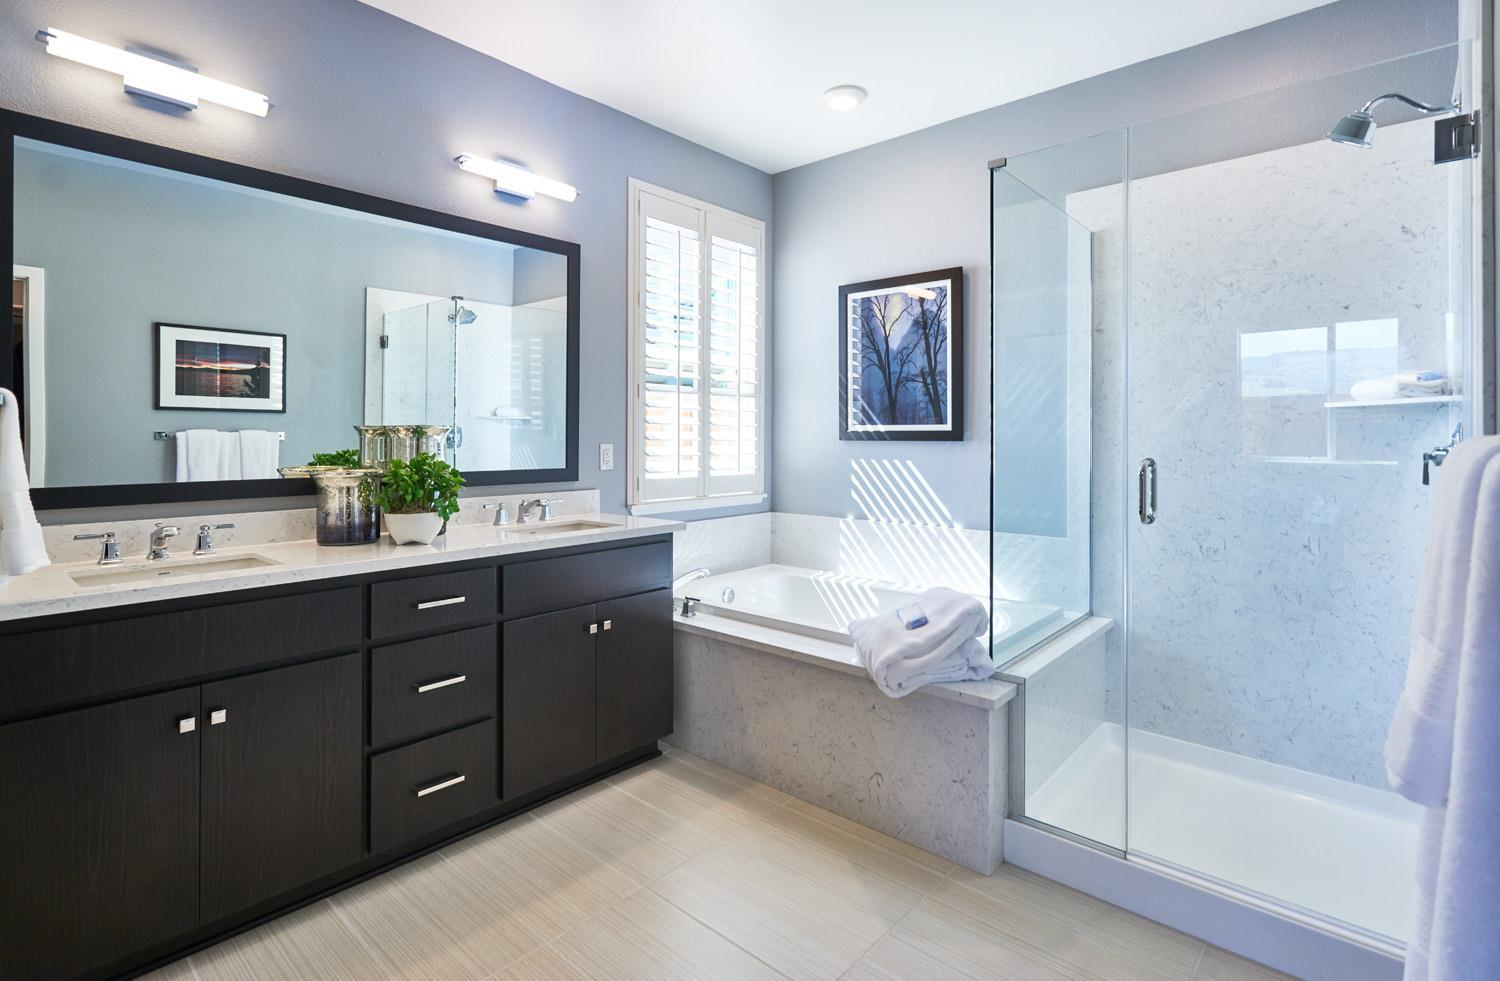 Bathroom featured in the Residence 4 By Signature Homes CA in Santa Rosa, CA